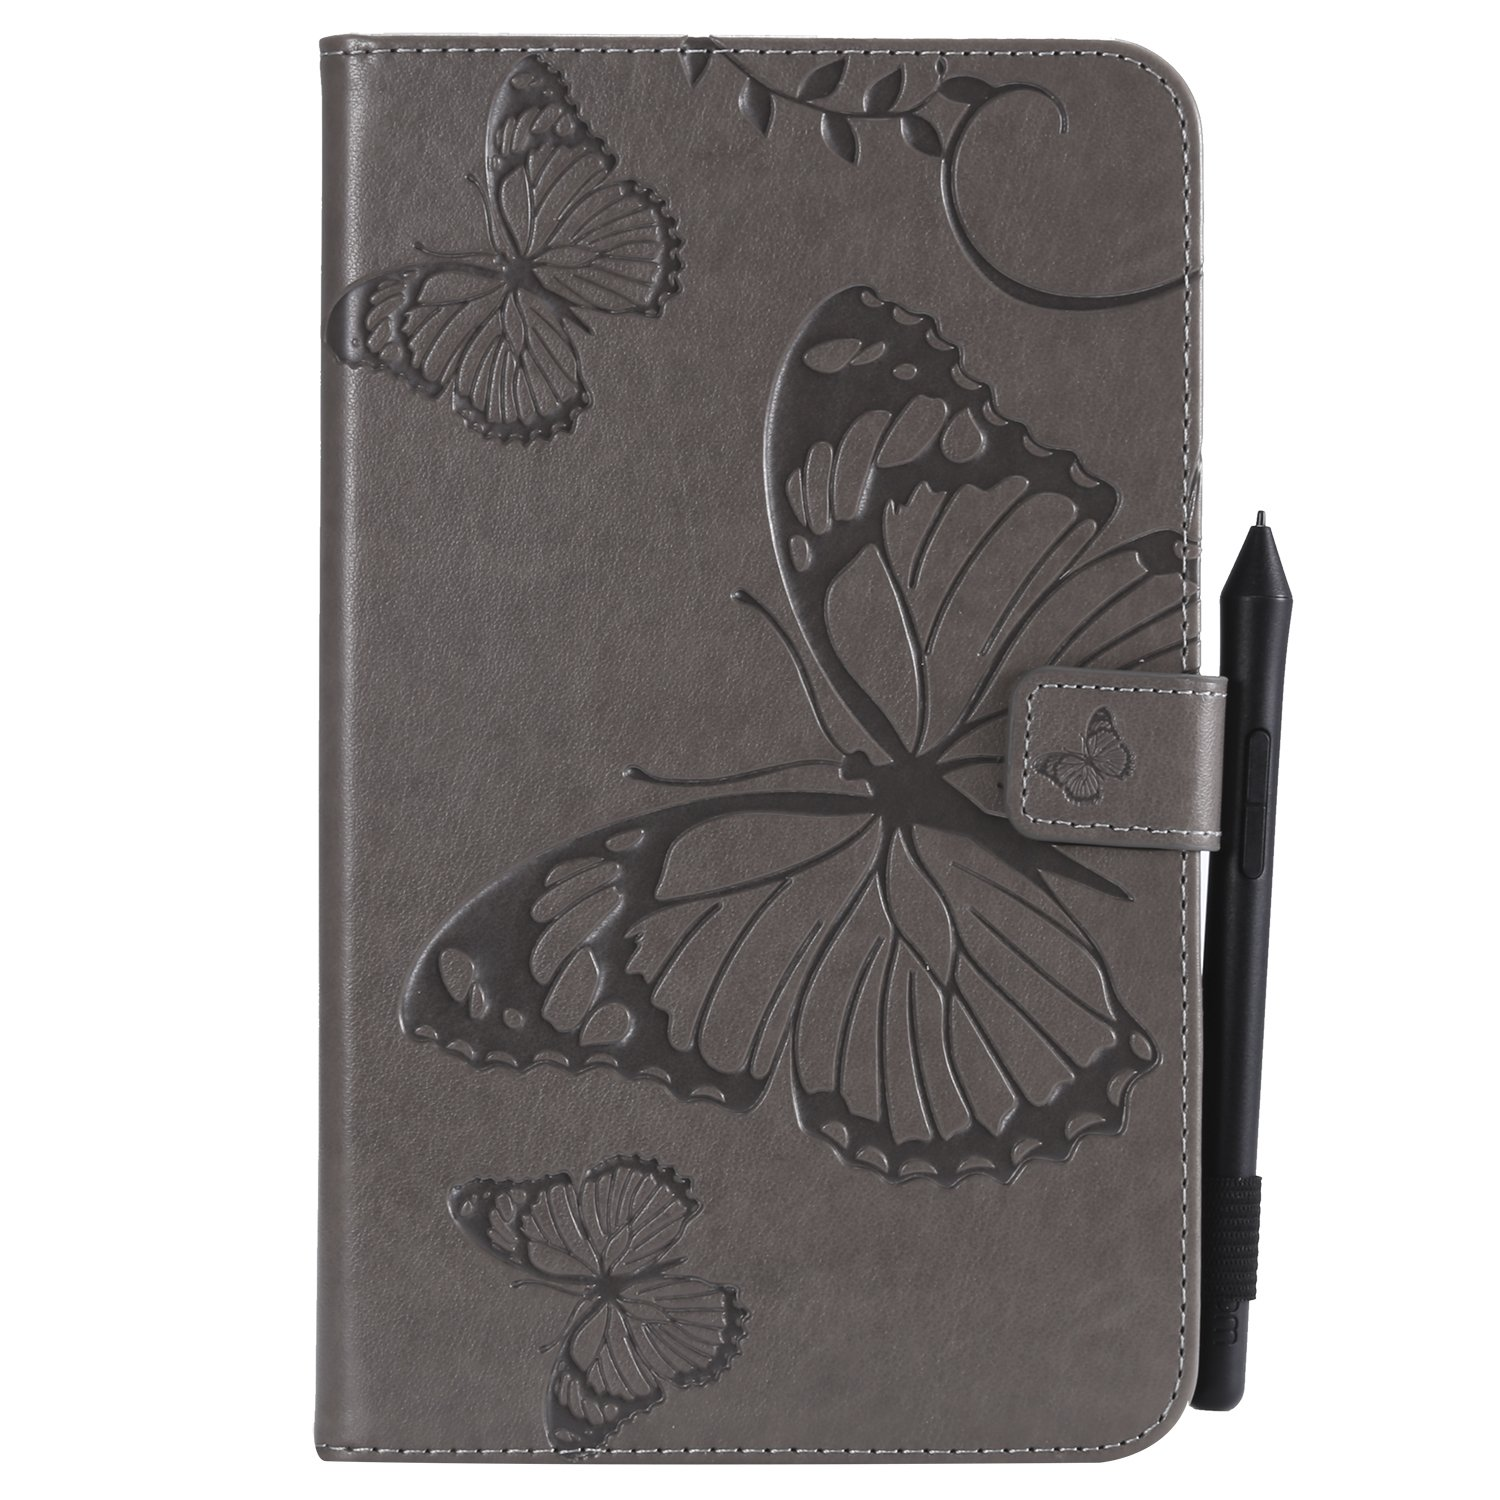 Bear Village Galaxy Tab a 2017 8.0 Inch Case, Butterfly Embossed Anti Scratch Shell with Adjust Stand, Smart Stand PU Leather Case for Samsung Galaxy Tab a 2017 8.0 Inch, Gray by Bear Village